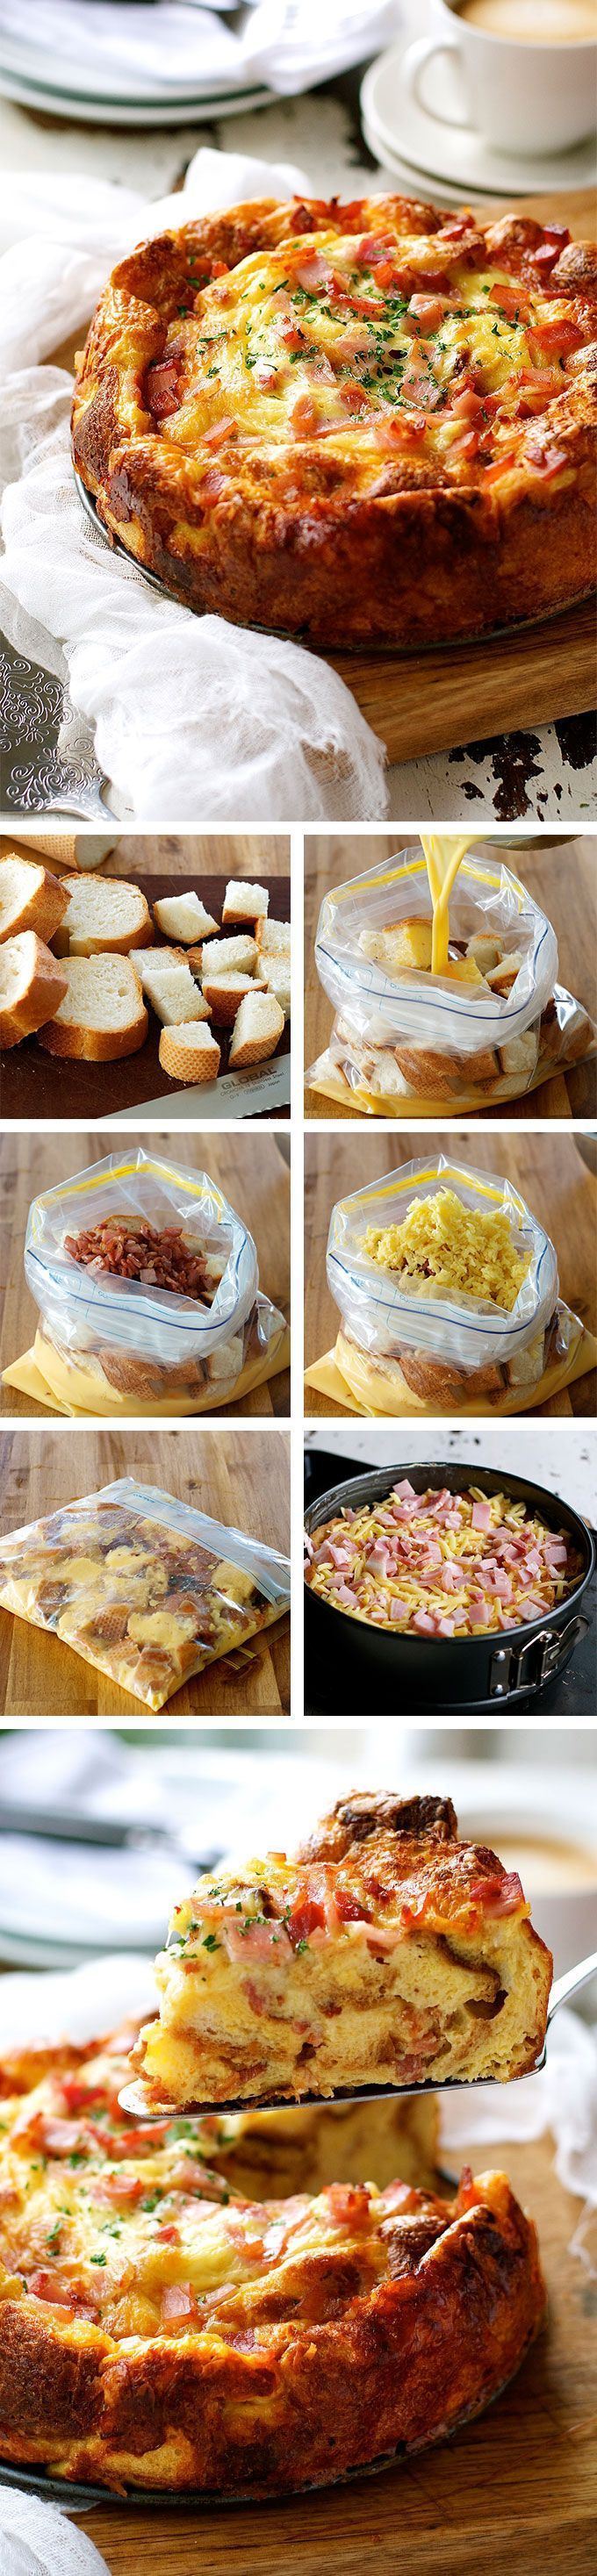 cheese bacon strata cake savoury bread pudding bread bake made with just bread eggs milk cheese and bacon great make ahead for feeding a crowd - Cheese Egg Strata